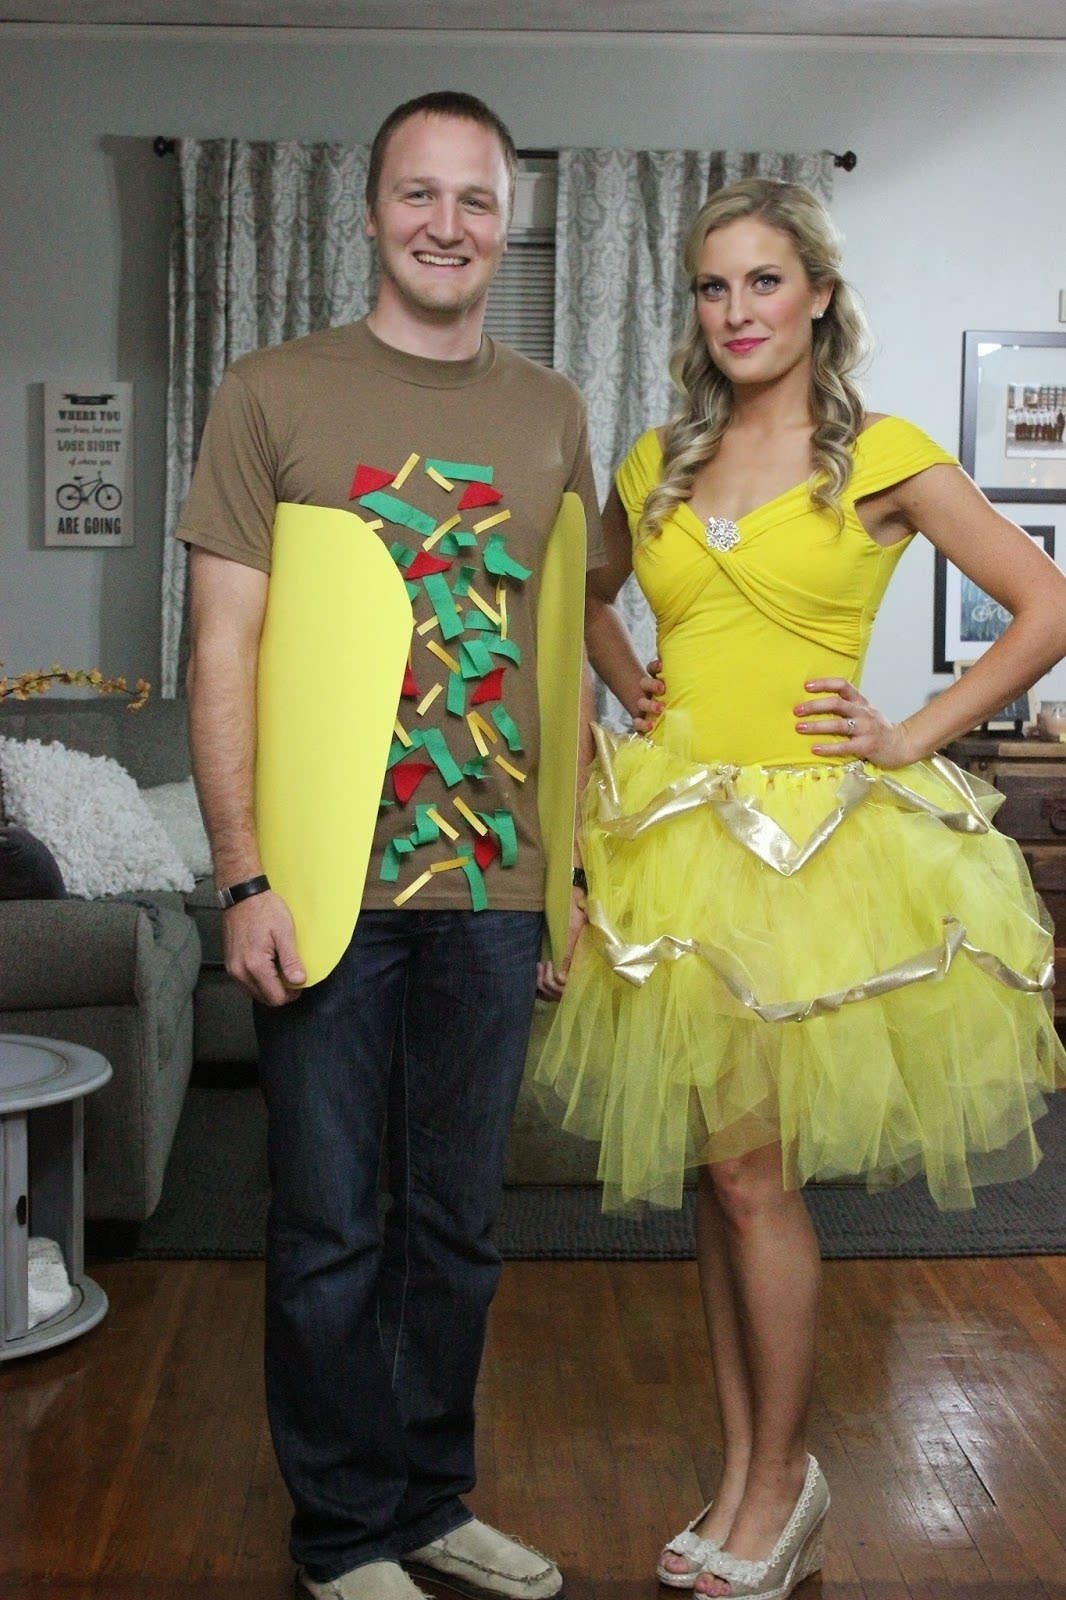 10 Famous Husband And Wife Halloween Costume Ideas 15 diy couples and family halloween costumes onecreativemommy 5 2020